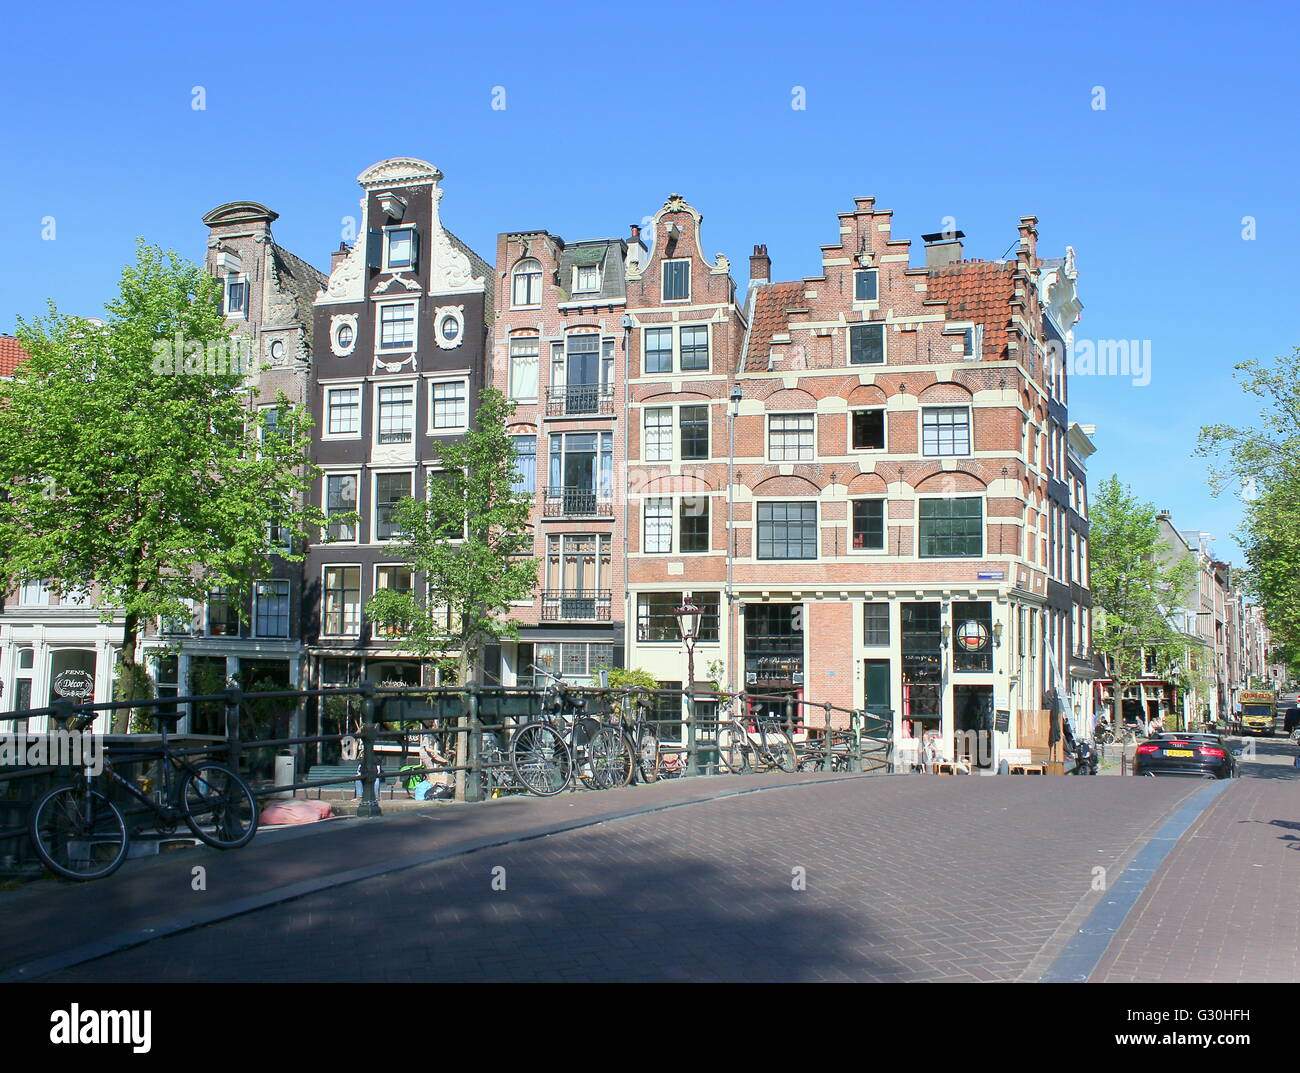 Historic stone bridge and 17th / 18th century houses where Prinsengracht meets Brouwersgracht canal in Amsterdam, - Stock Image